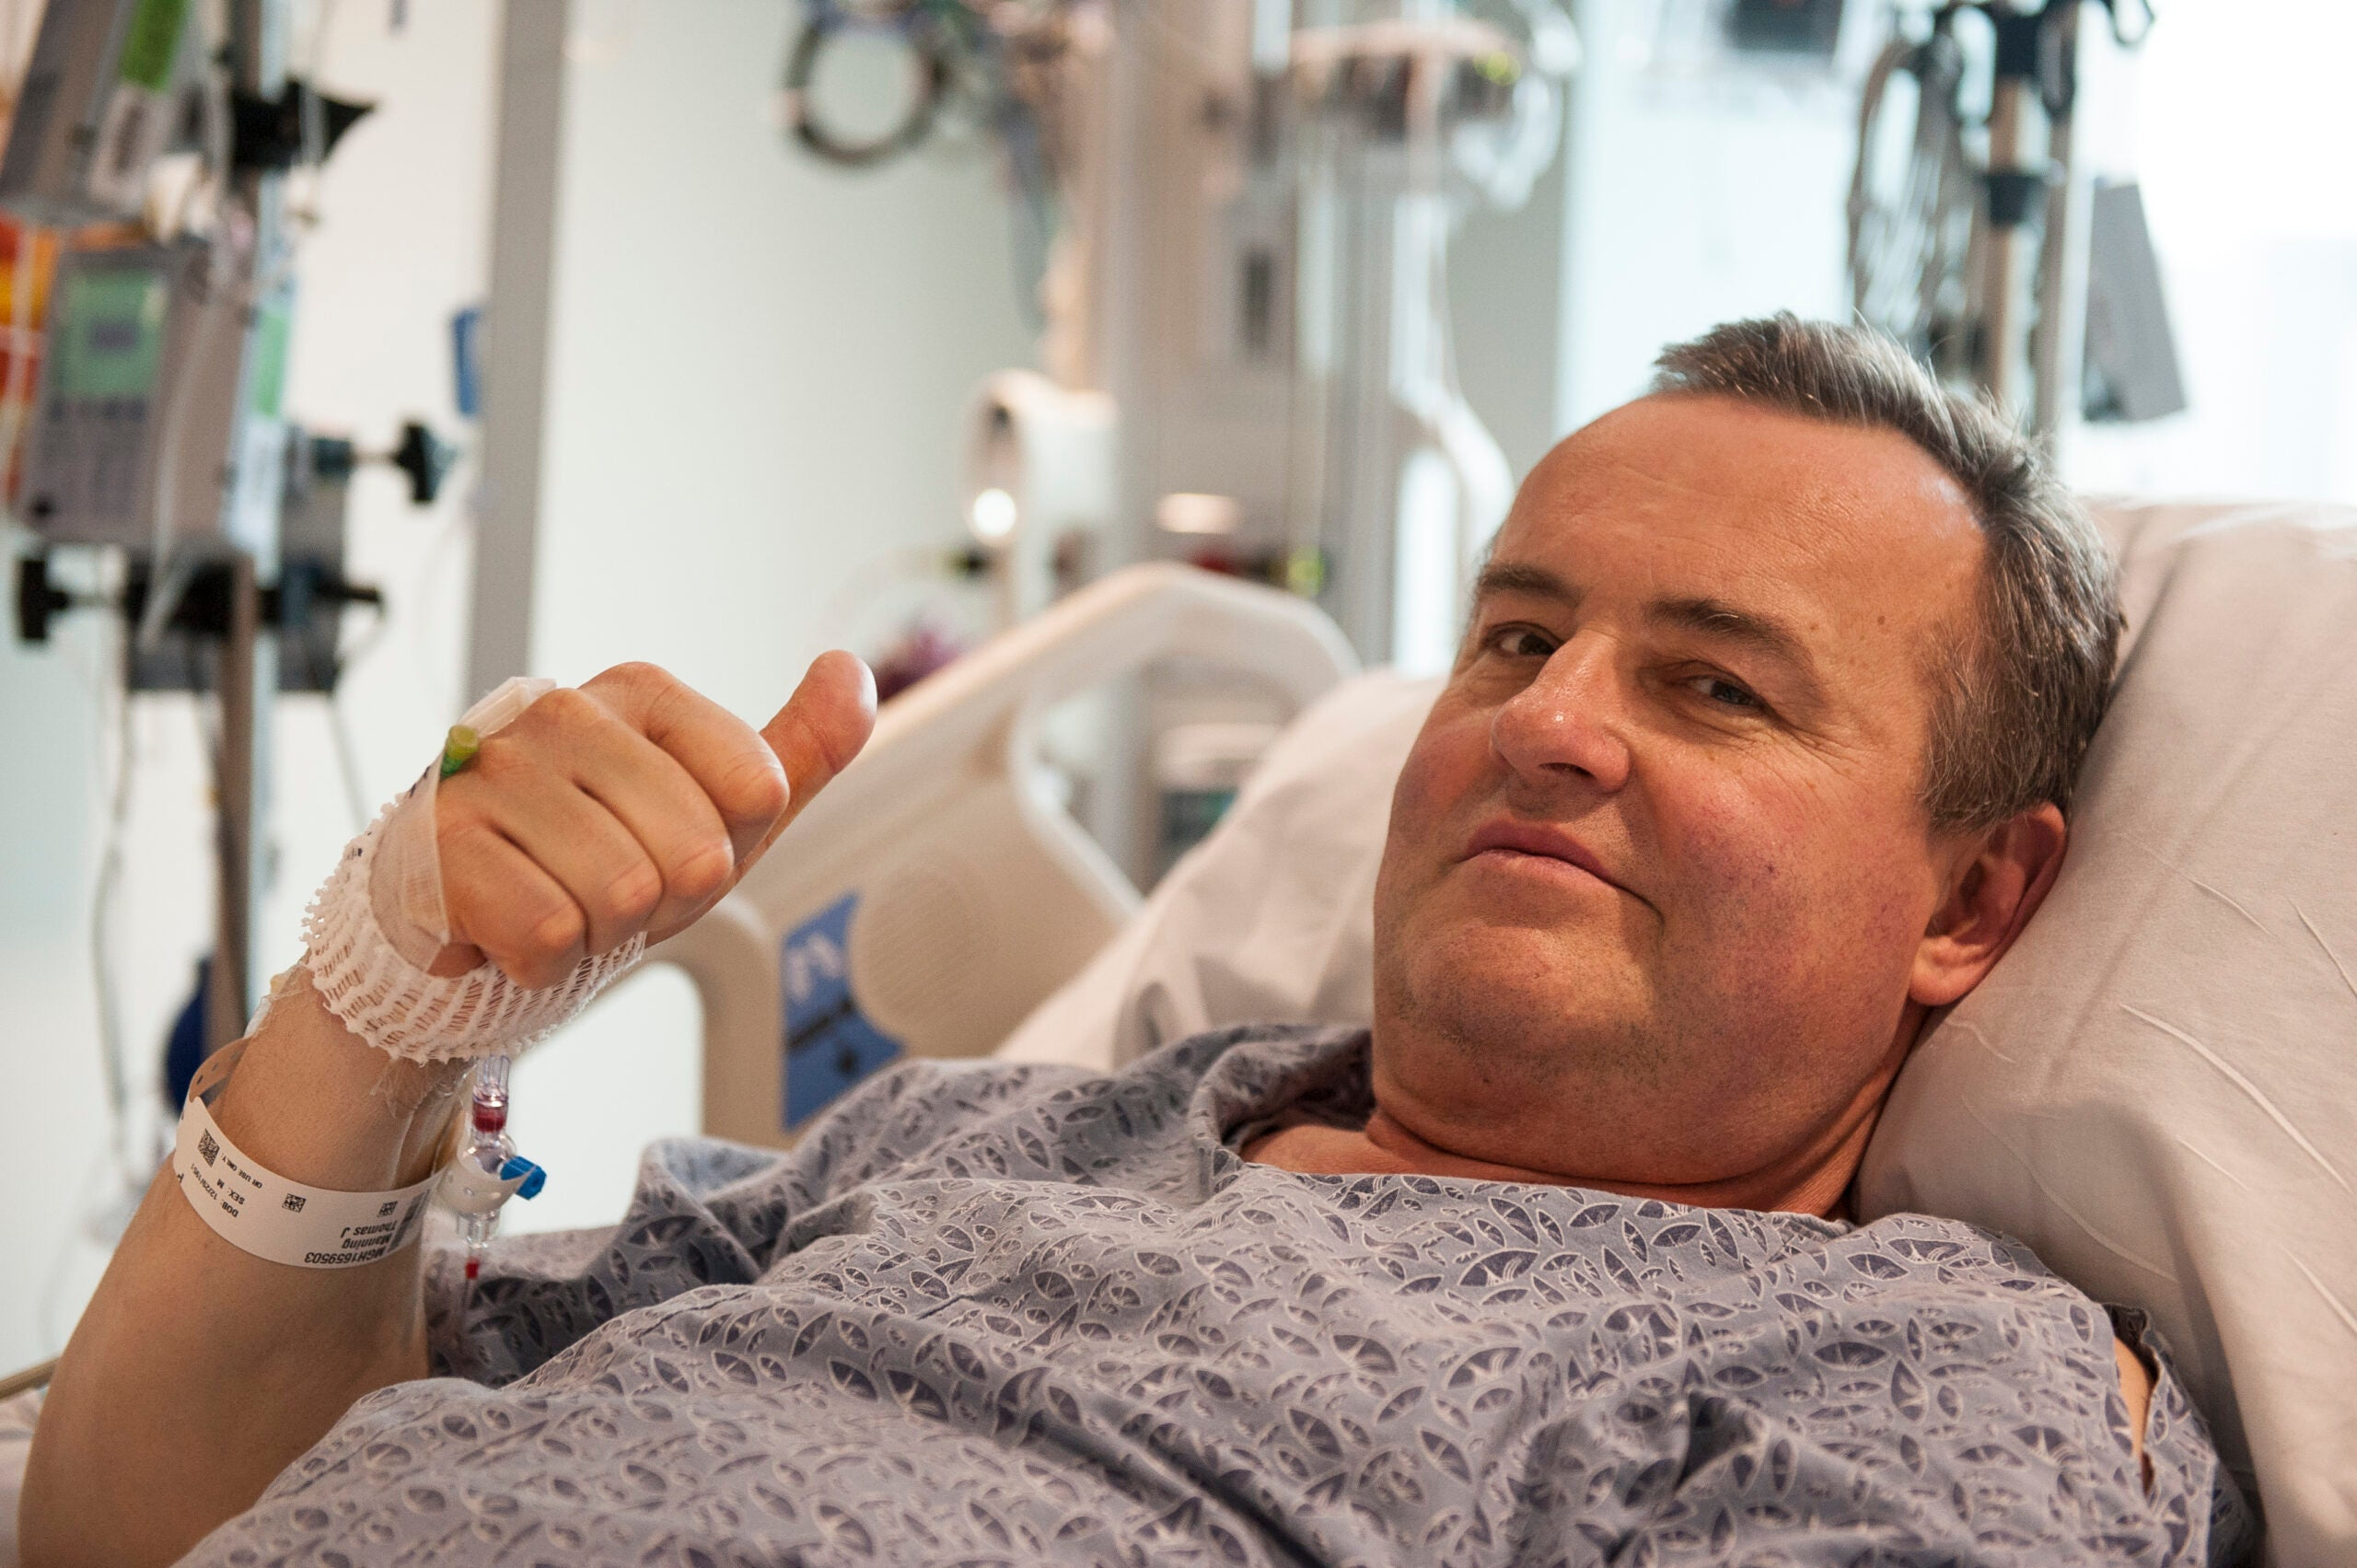 The First U.S. Penis Transplant Has Been Completed